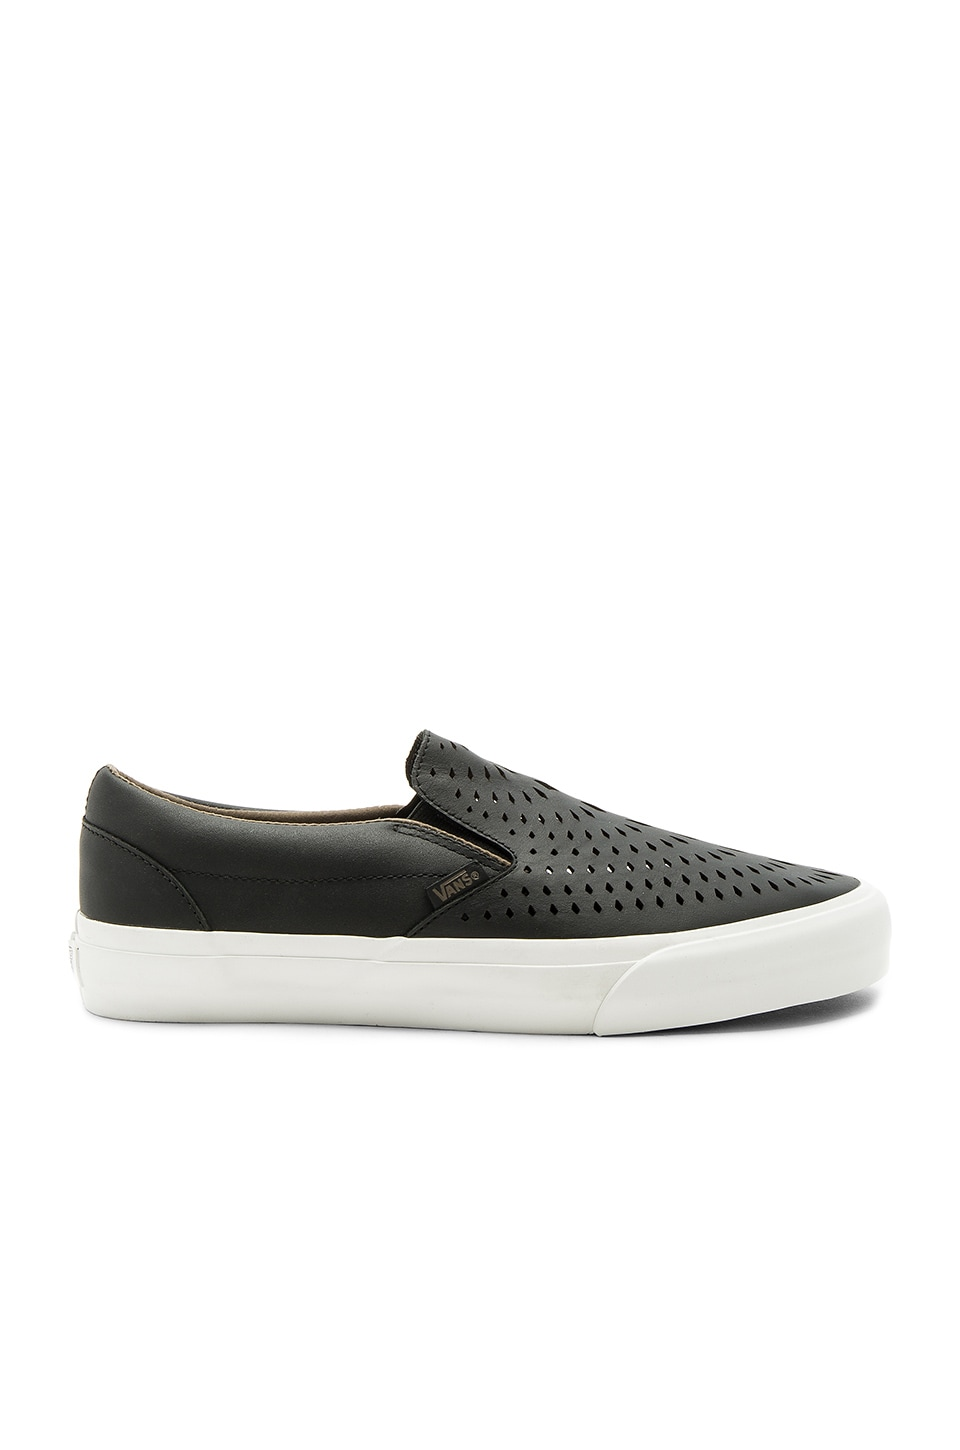 Classic Slip On DX by Vans